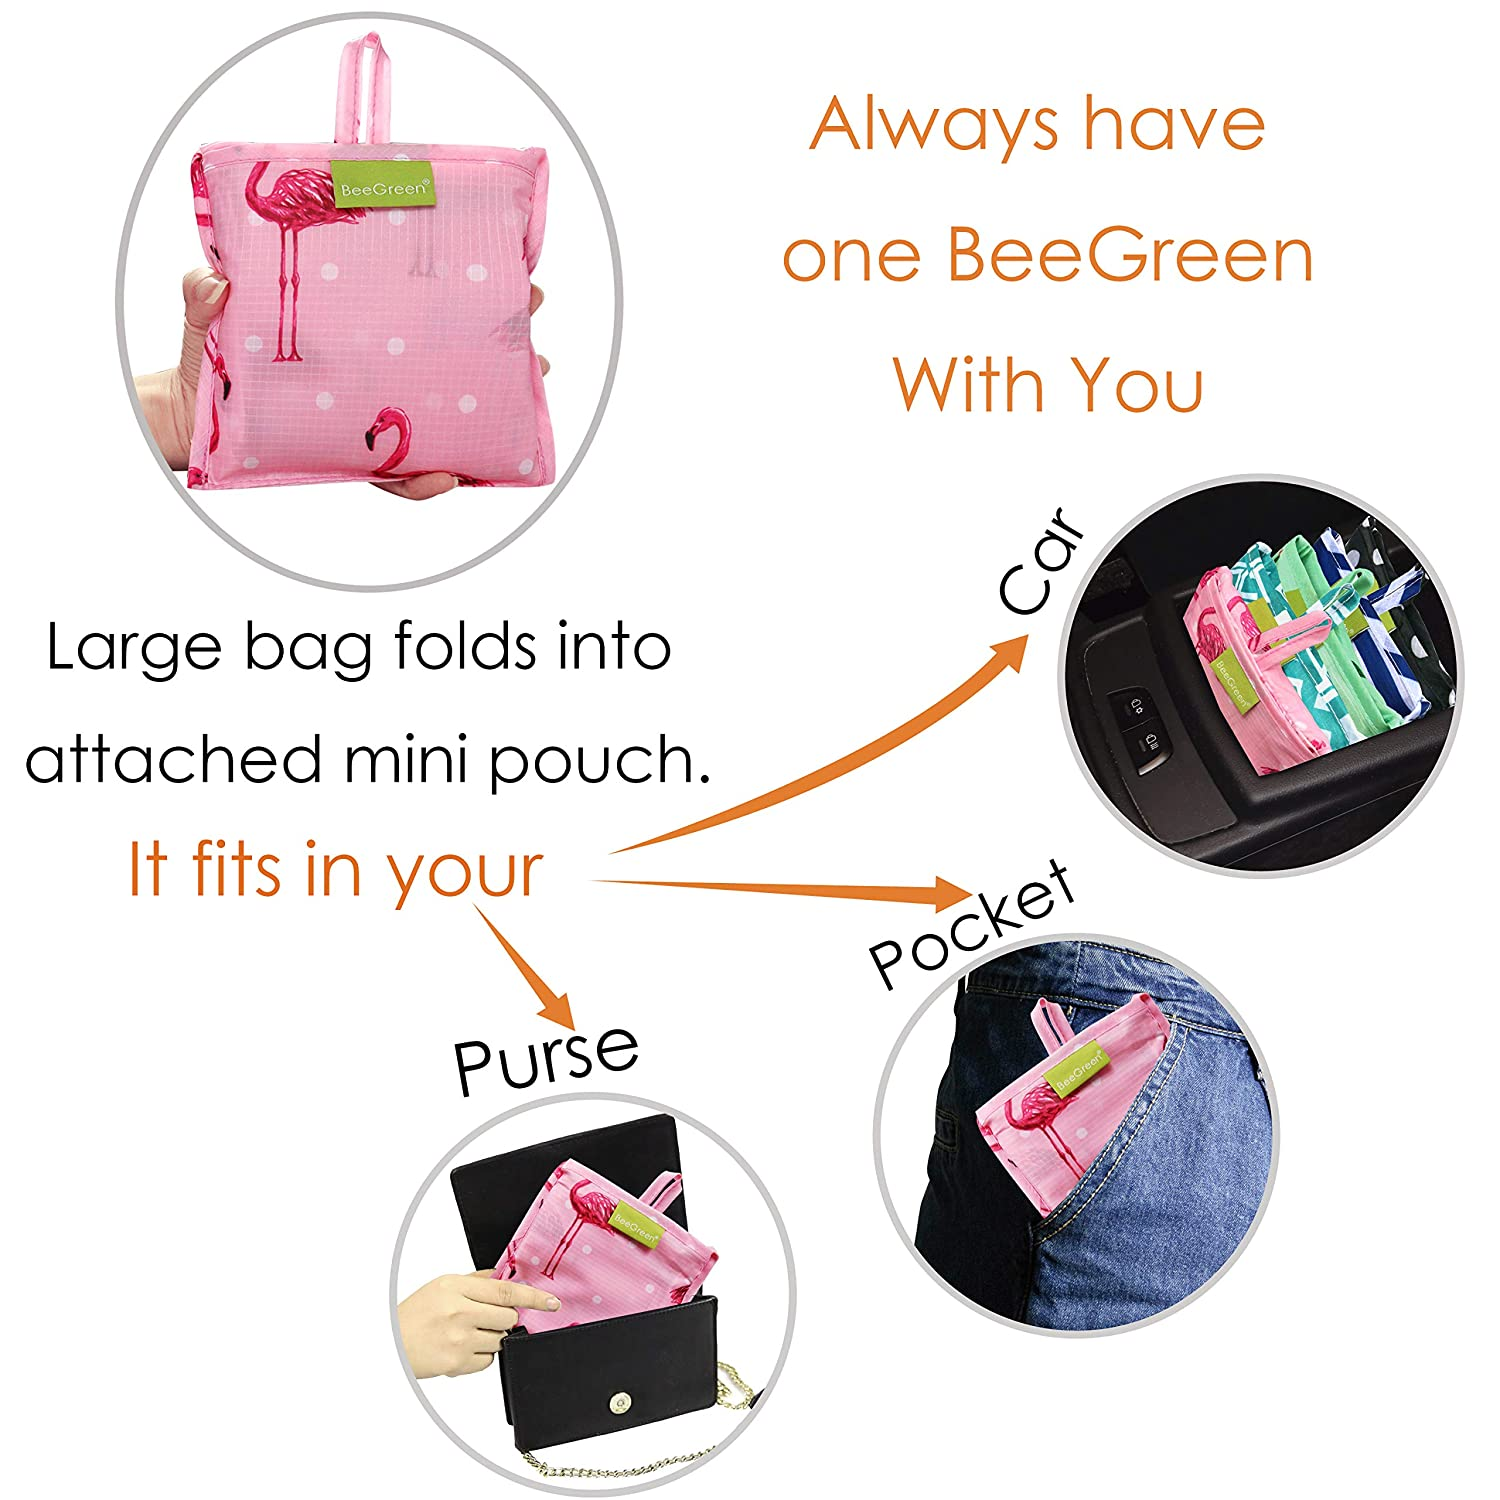 ab13ed210 Folding Shopping Tote Bag Fits in Pocket BeeGreenBags VF07 Foldable  Reusable Grocery Bags Cute Designs 4 ...